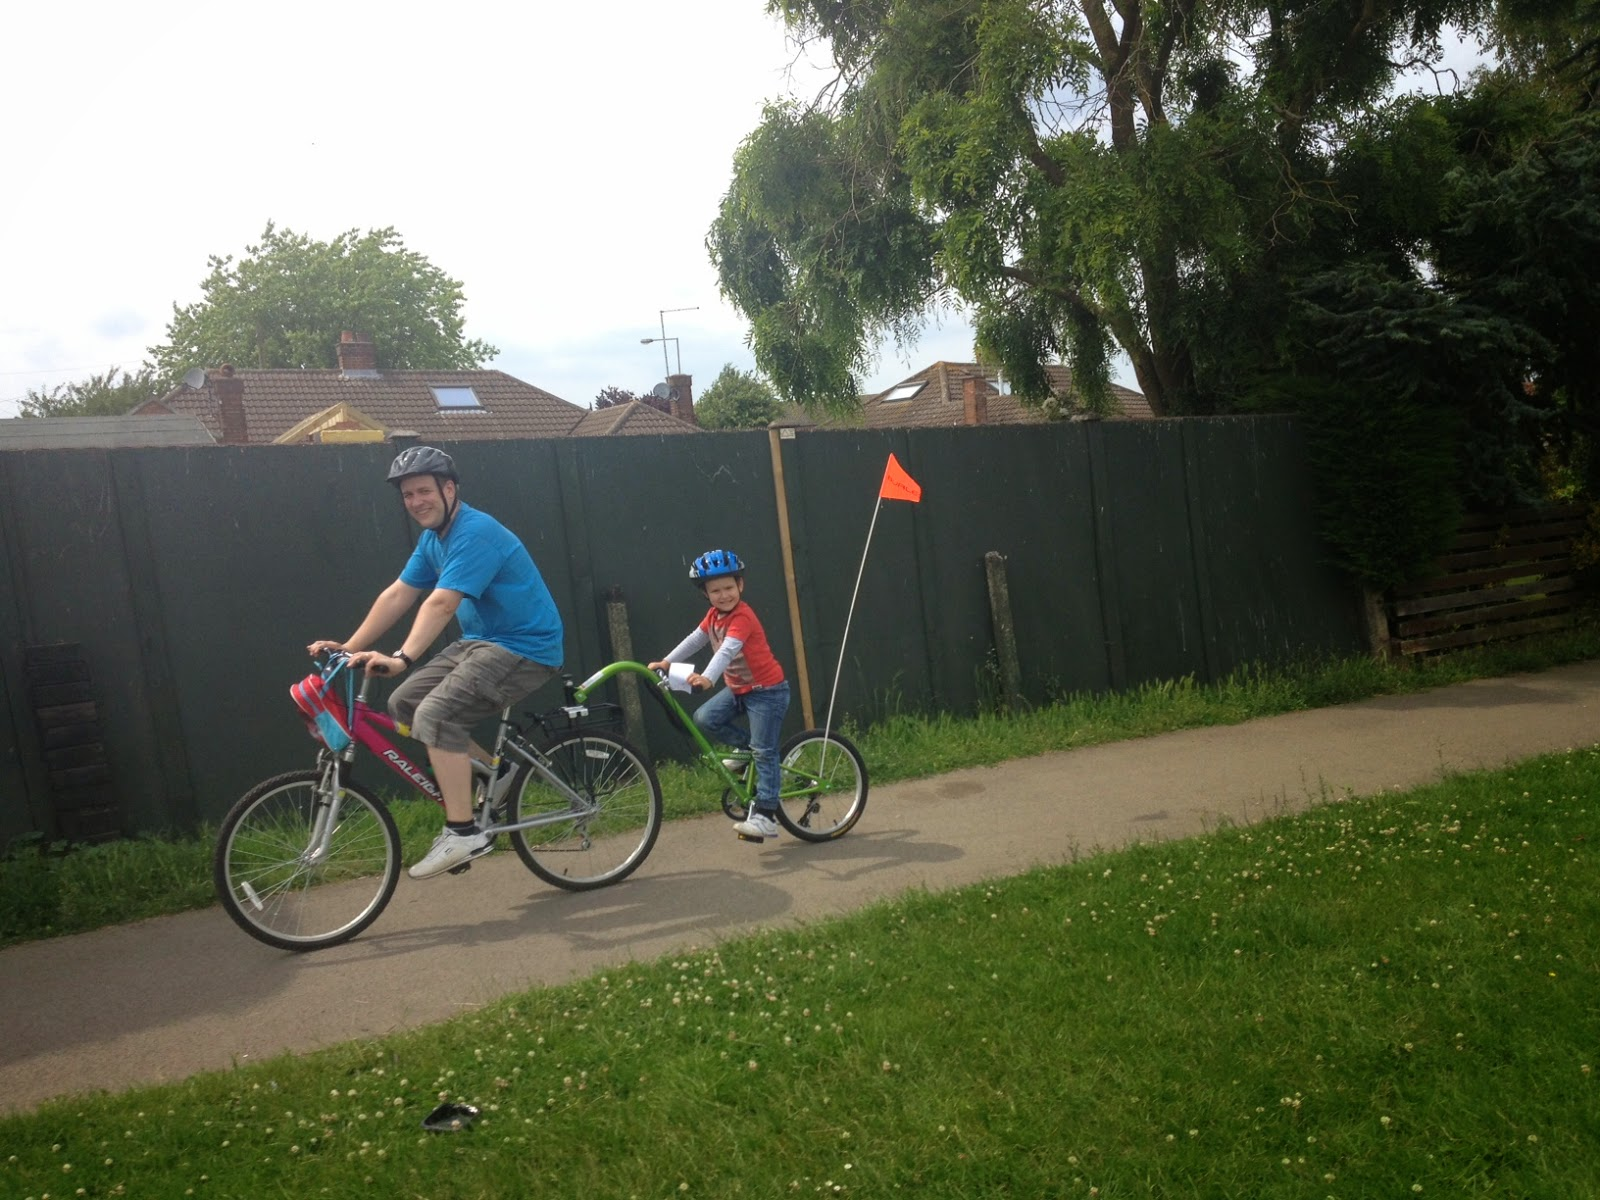 Daddy and Big Boy on the bike